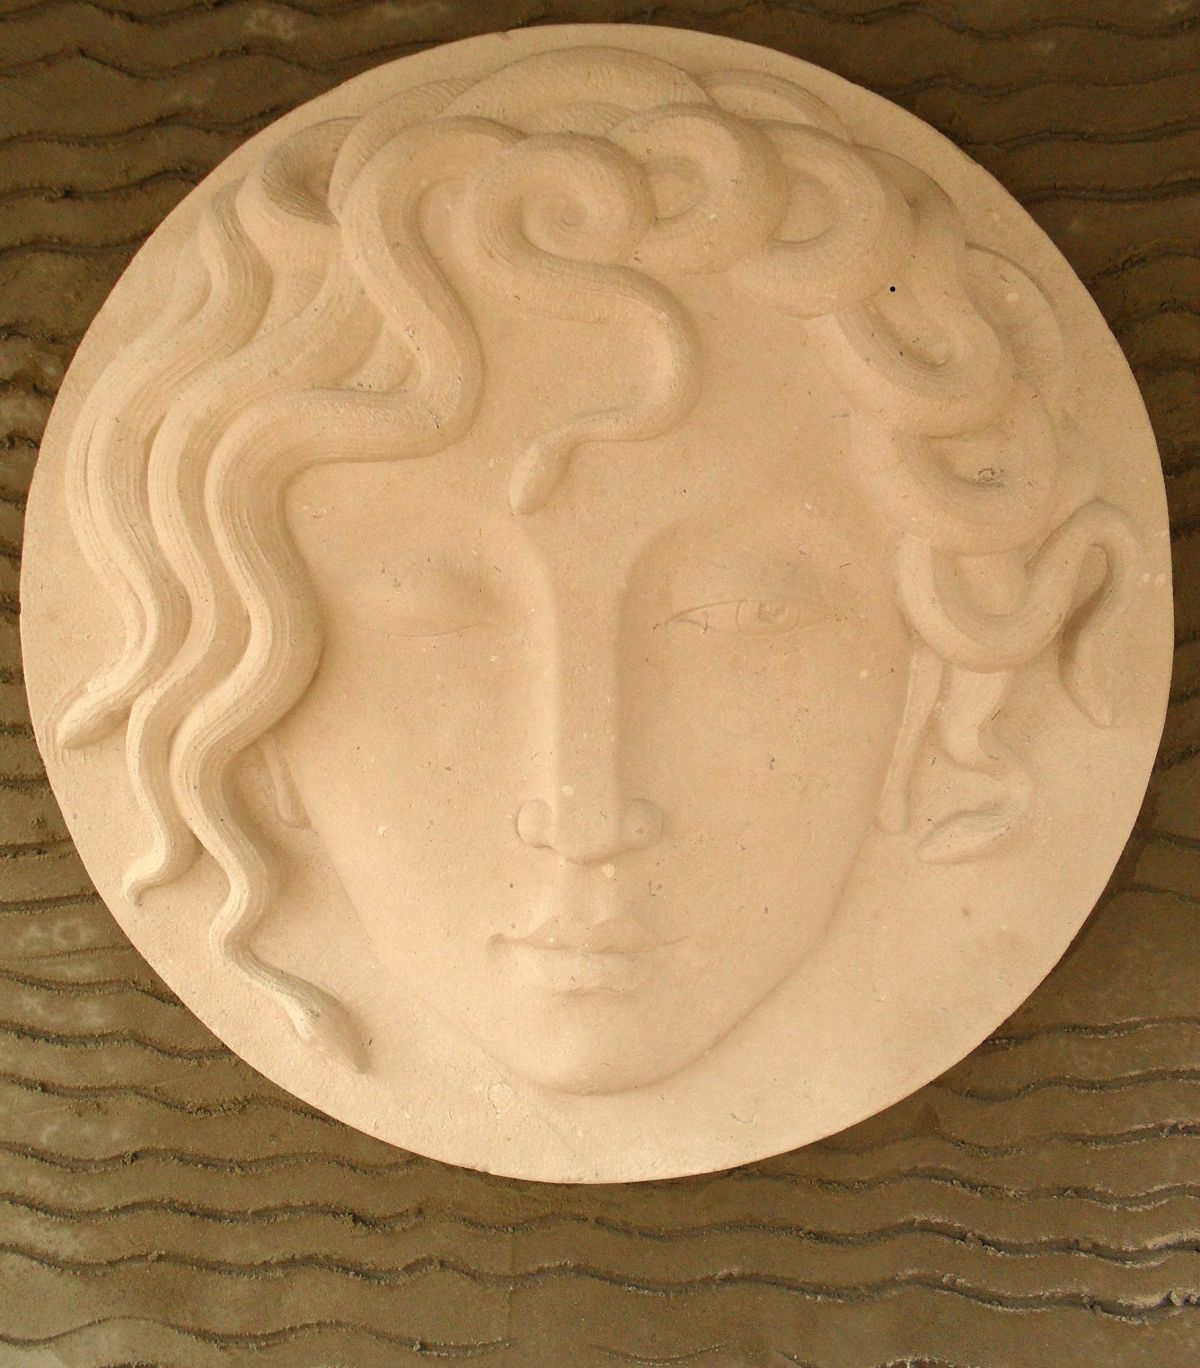 Medusa - carving by Tom Clark from a sketch by Nancy Farmer